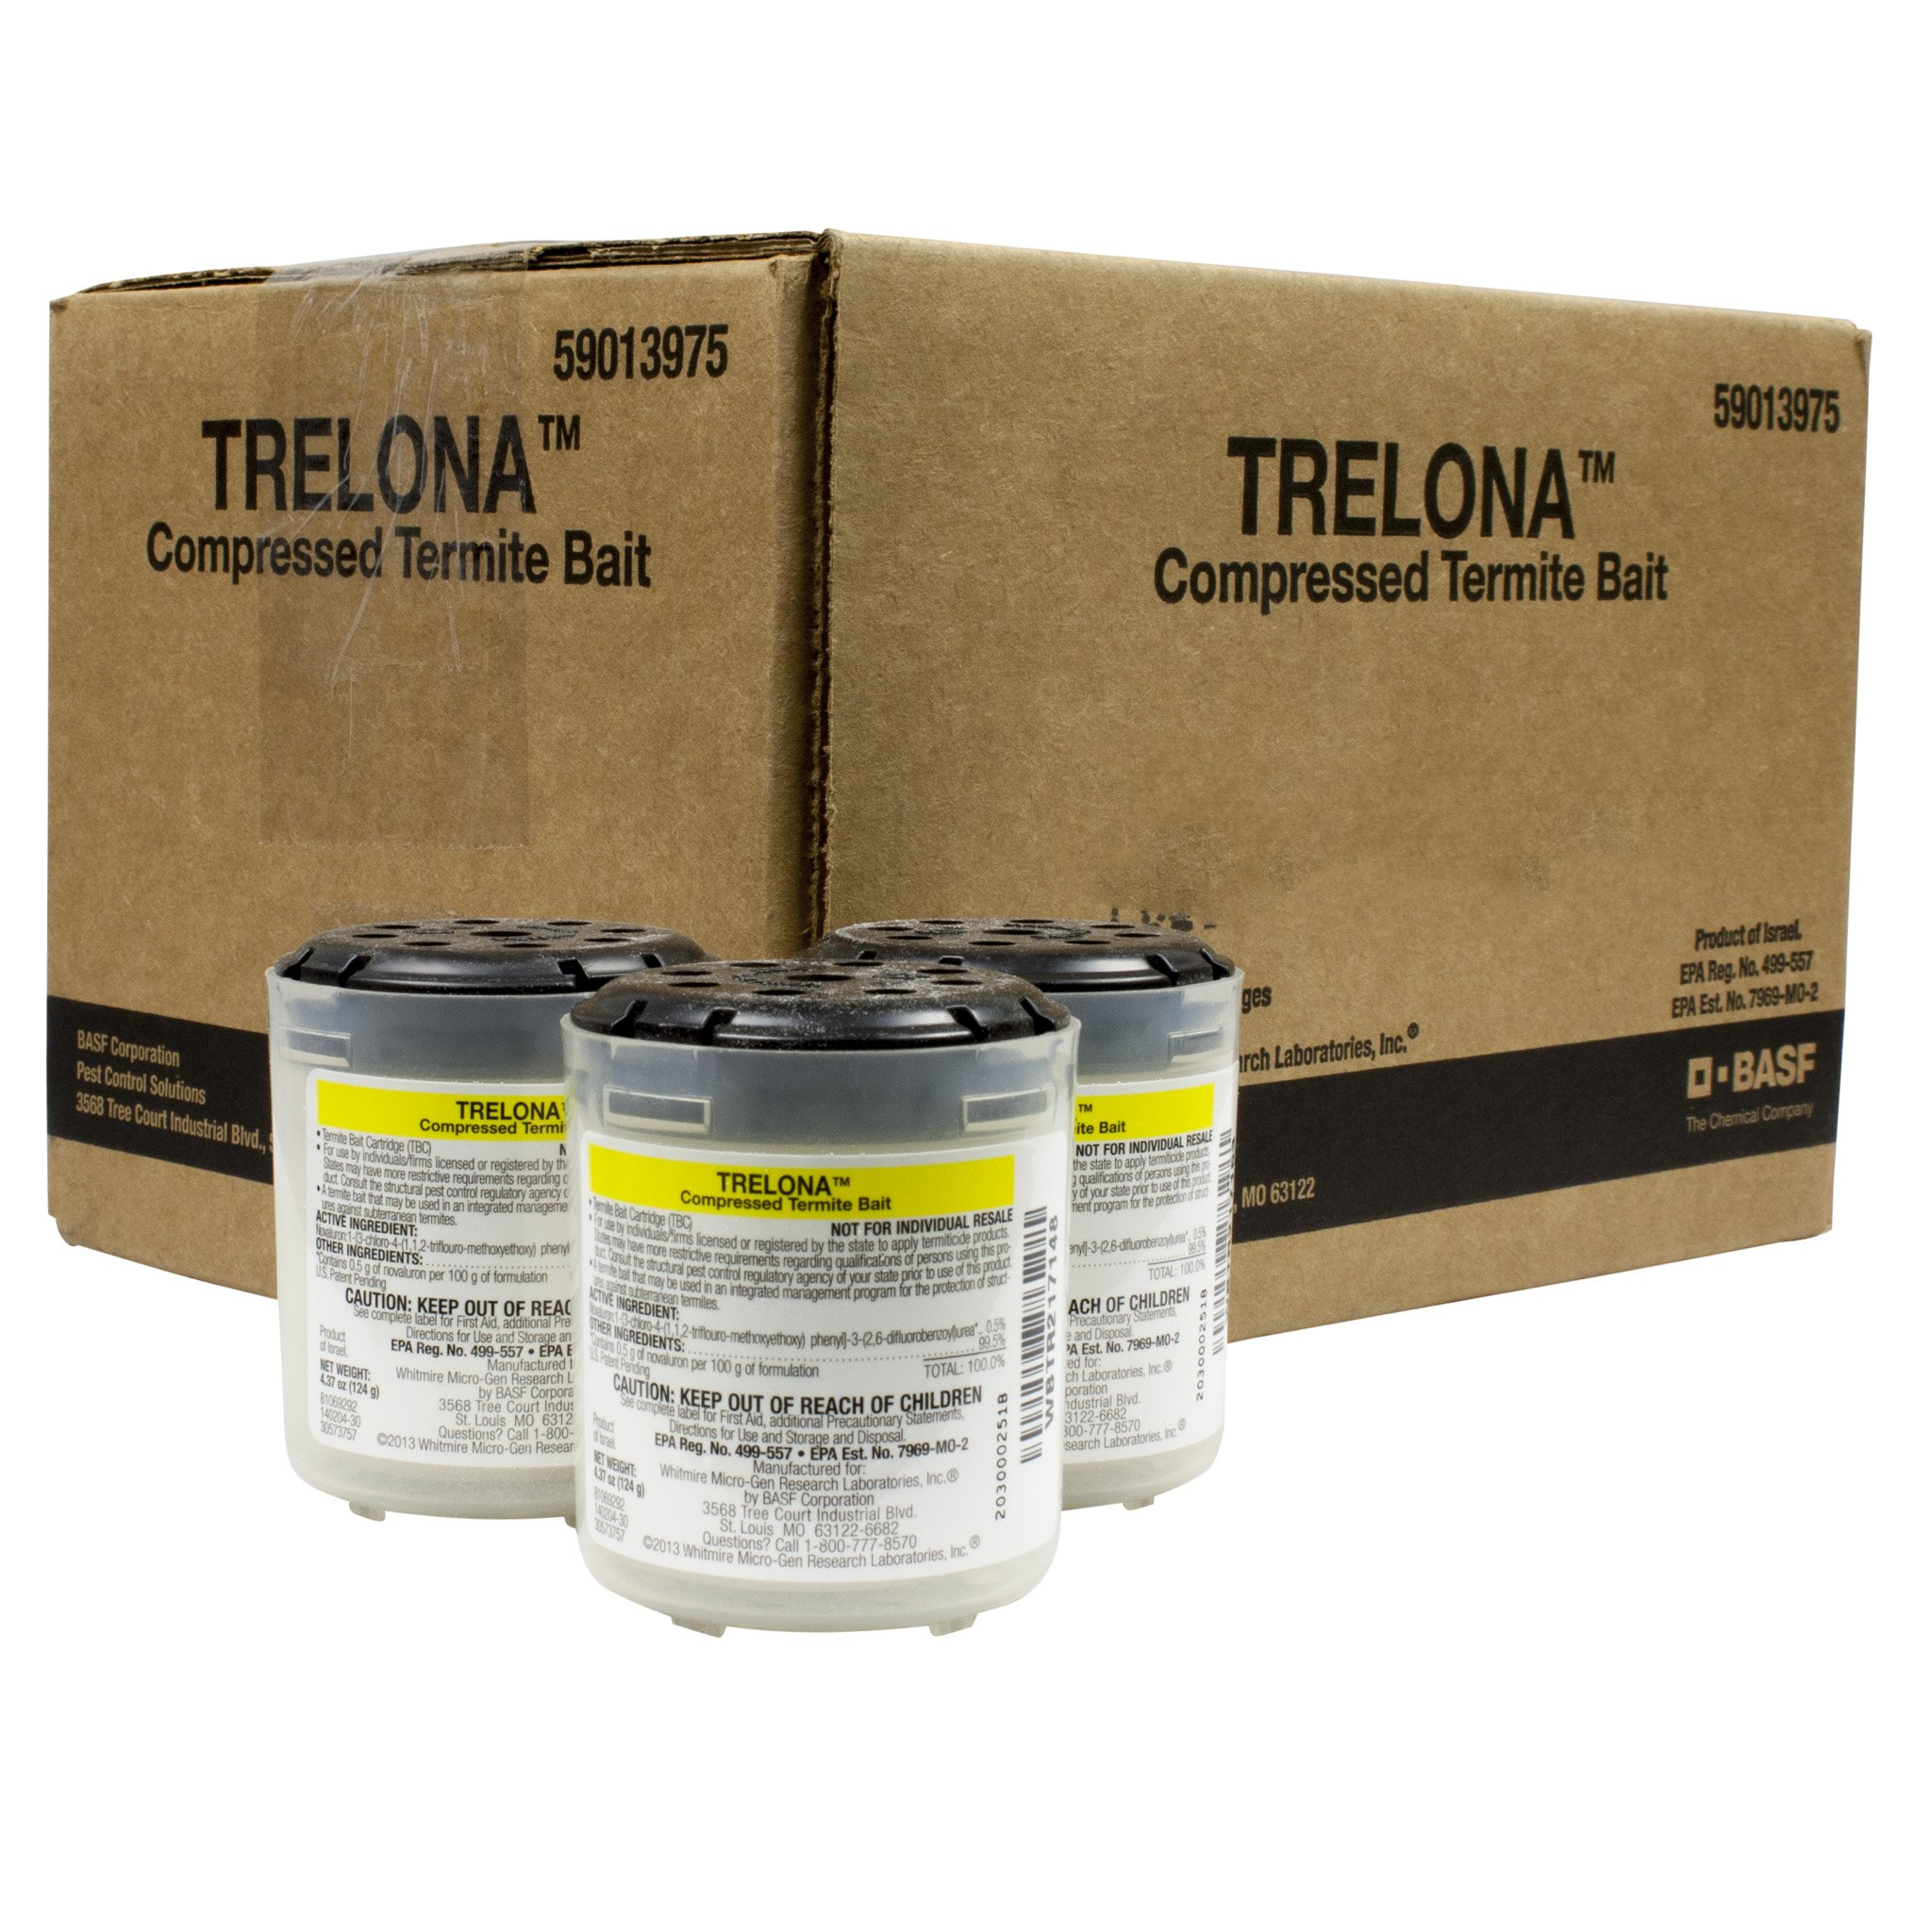 Trelona - CASE 24 BAIT CARTRIDGES by DPD